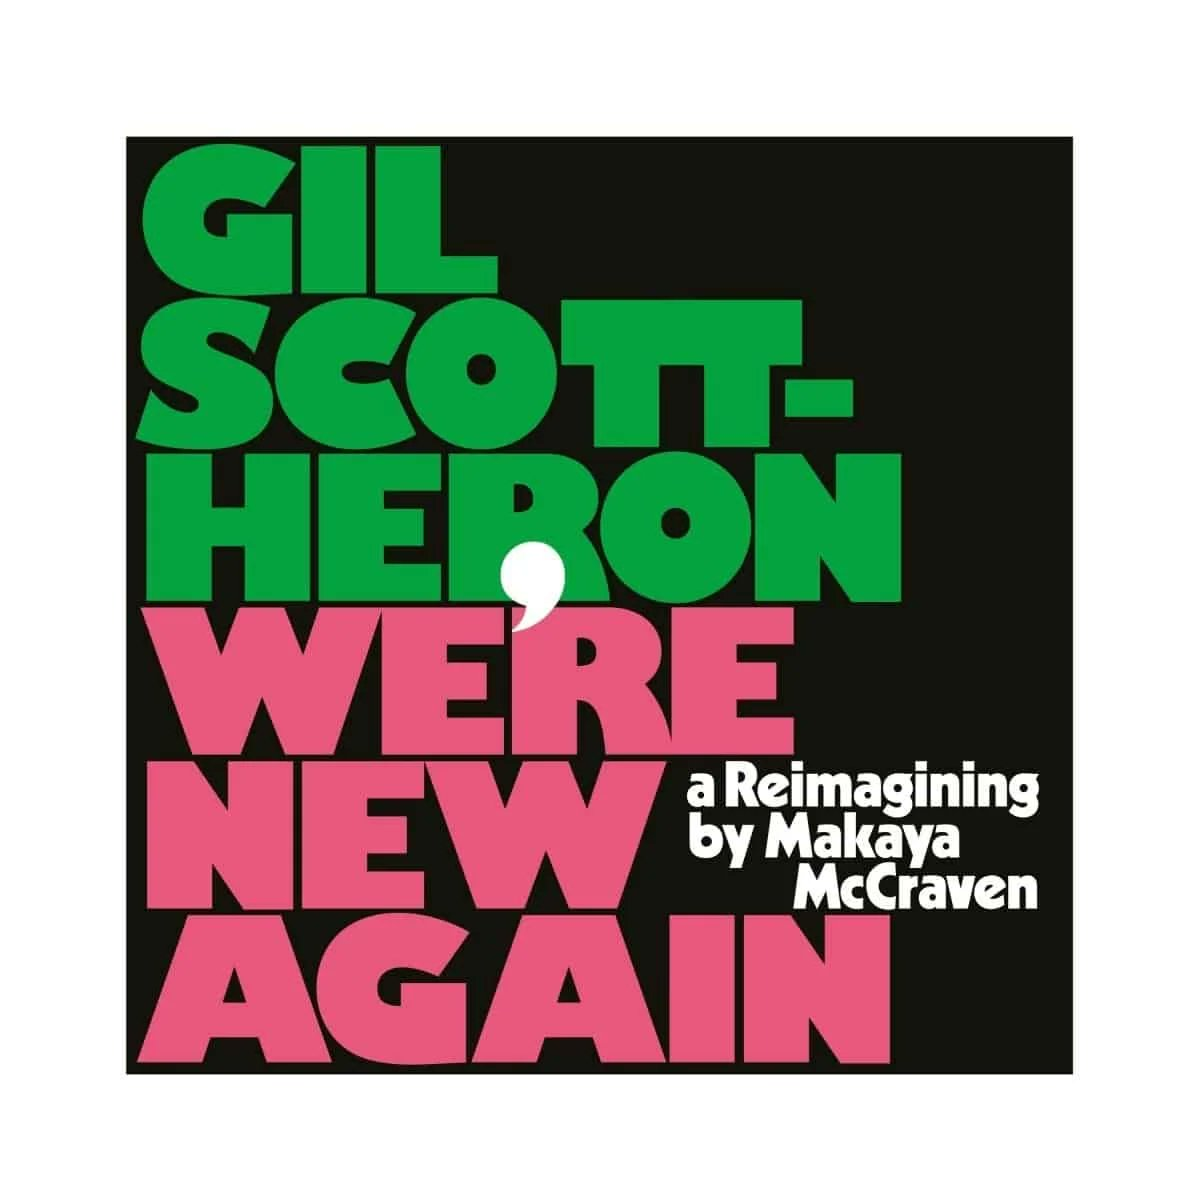 LOVE RECORD STORES EXCLUSIVES: 'We're New Again – A Re-imagining by Makaya McCraven' by Gil Scott-Heron  McCraven weaves full-of-flair jazz around Gil's poetics on this incredible rework release. Easily one of the jazz highlights of the year.